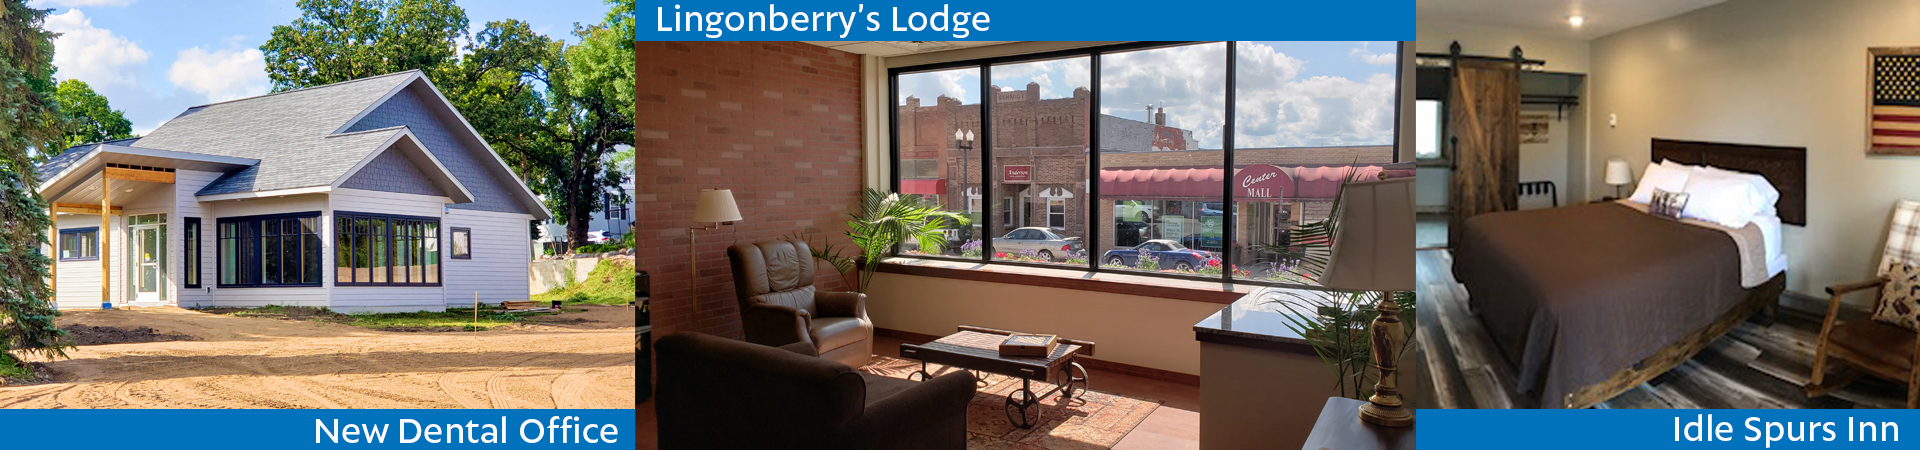 Lingonberry's Lodge Photos, Idle Spurs Inn Update, New Dentist sets date to open & More!